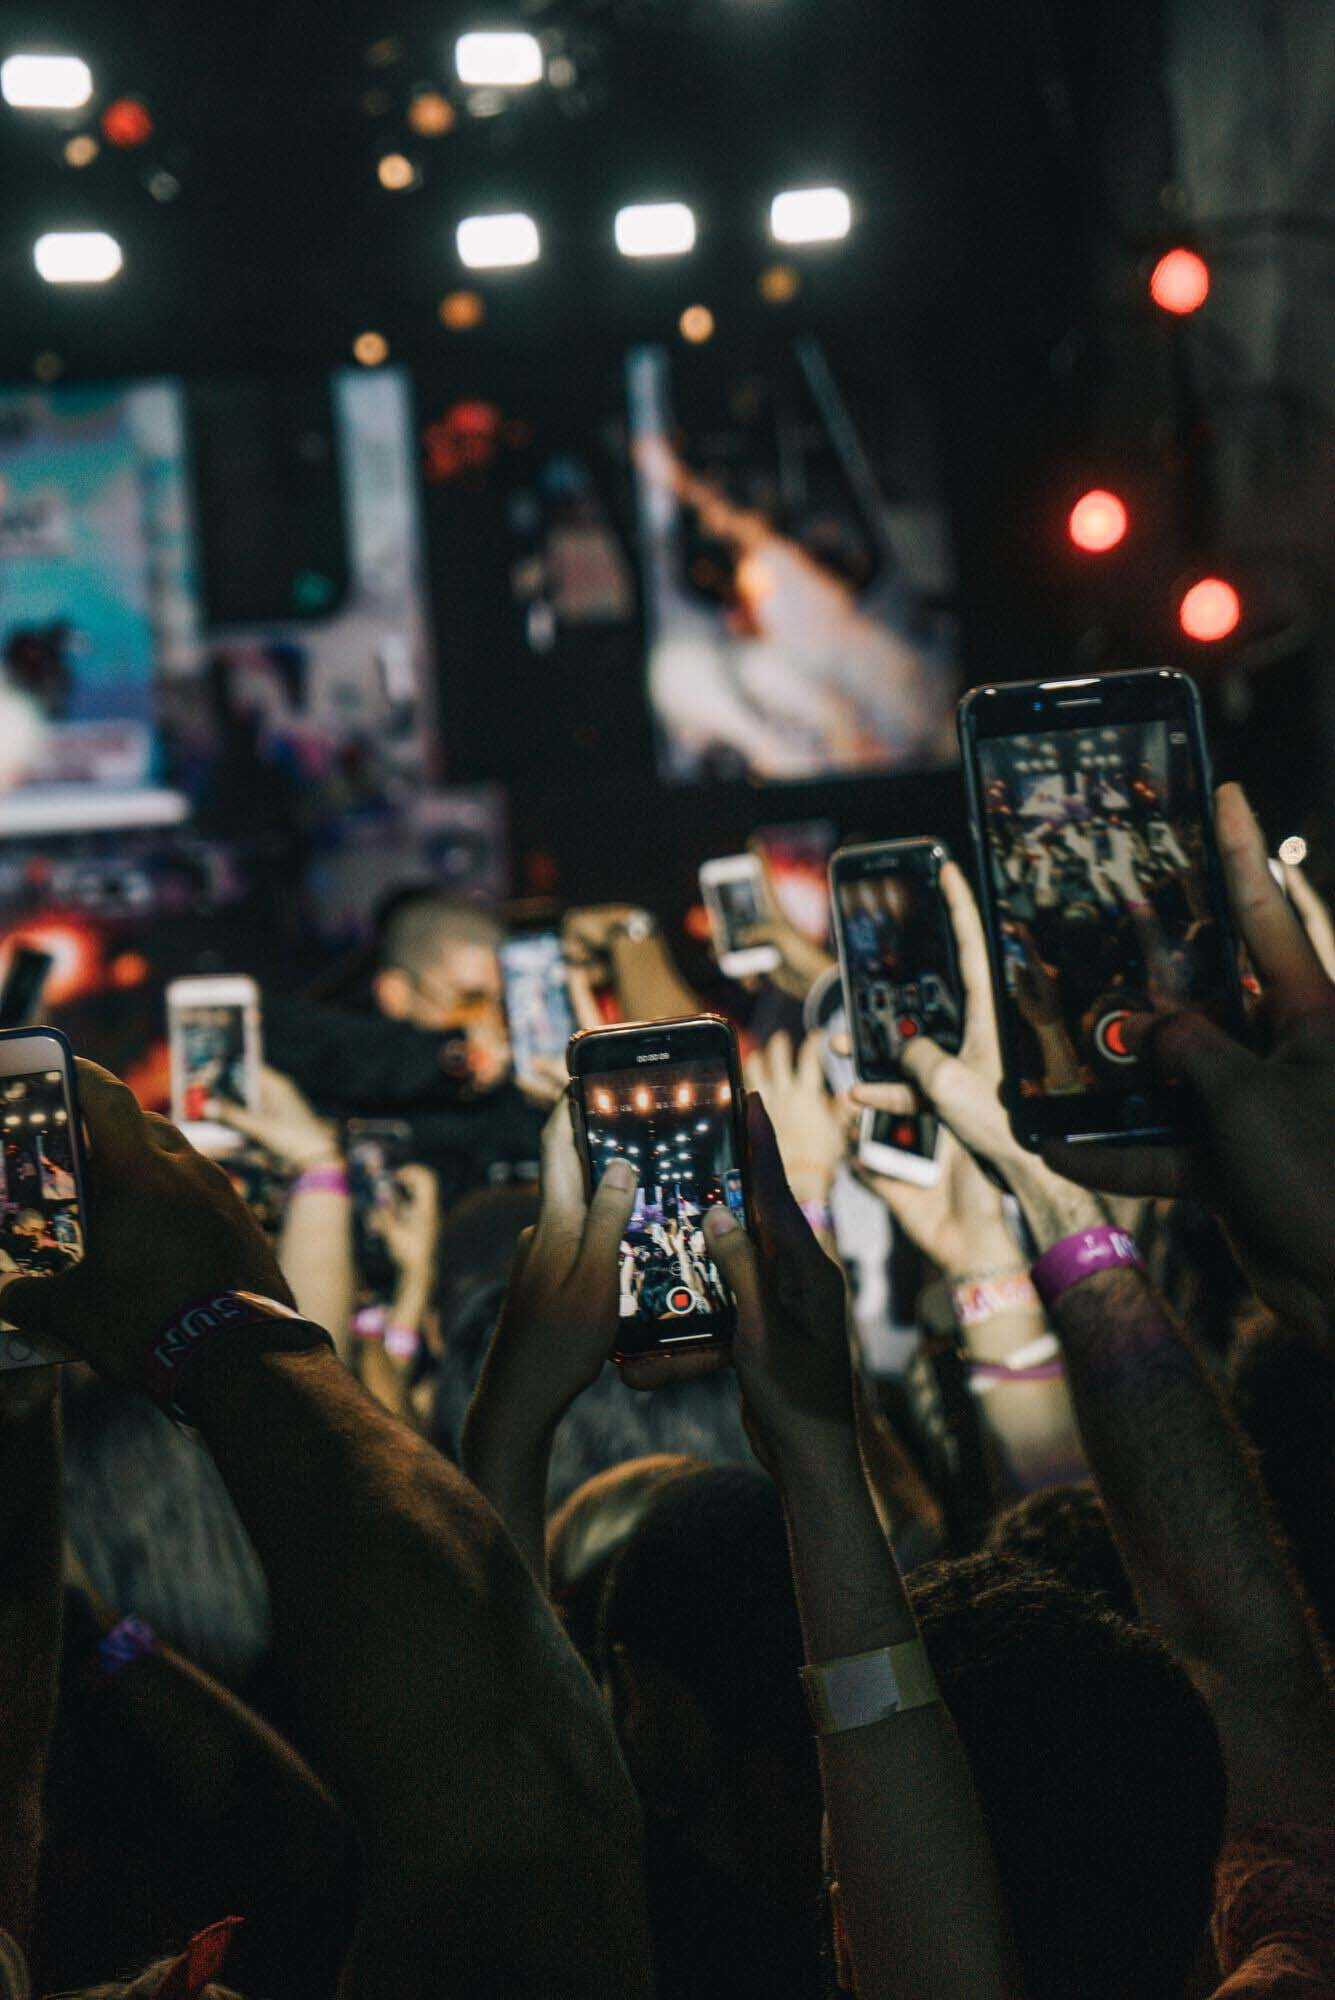 Dozens of hands hold phones up to record a concert performance